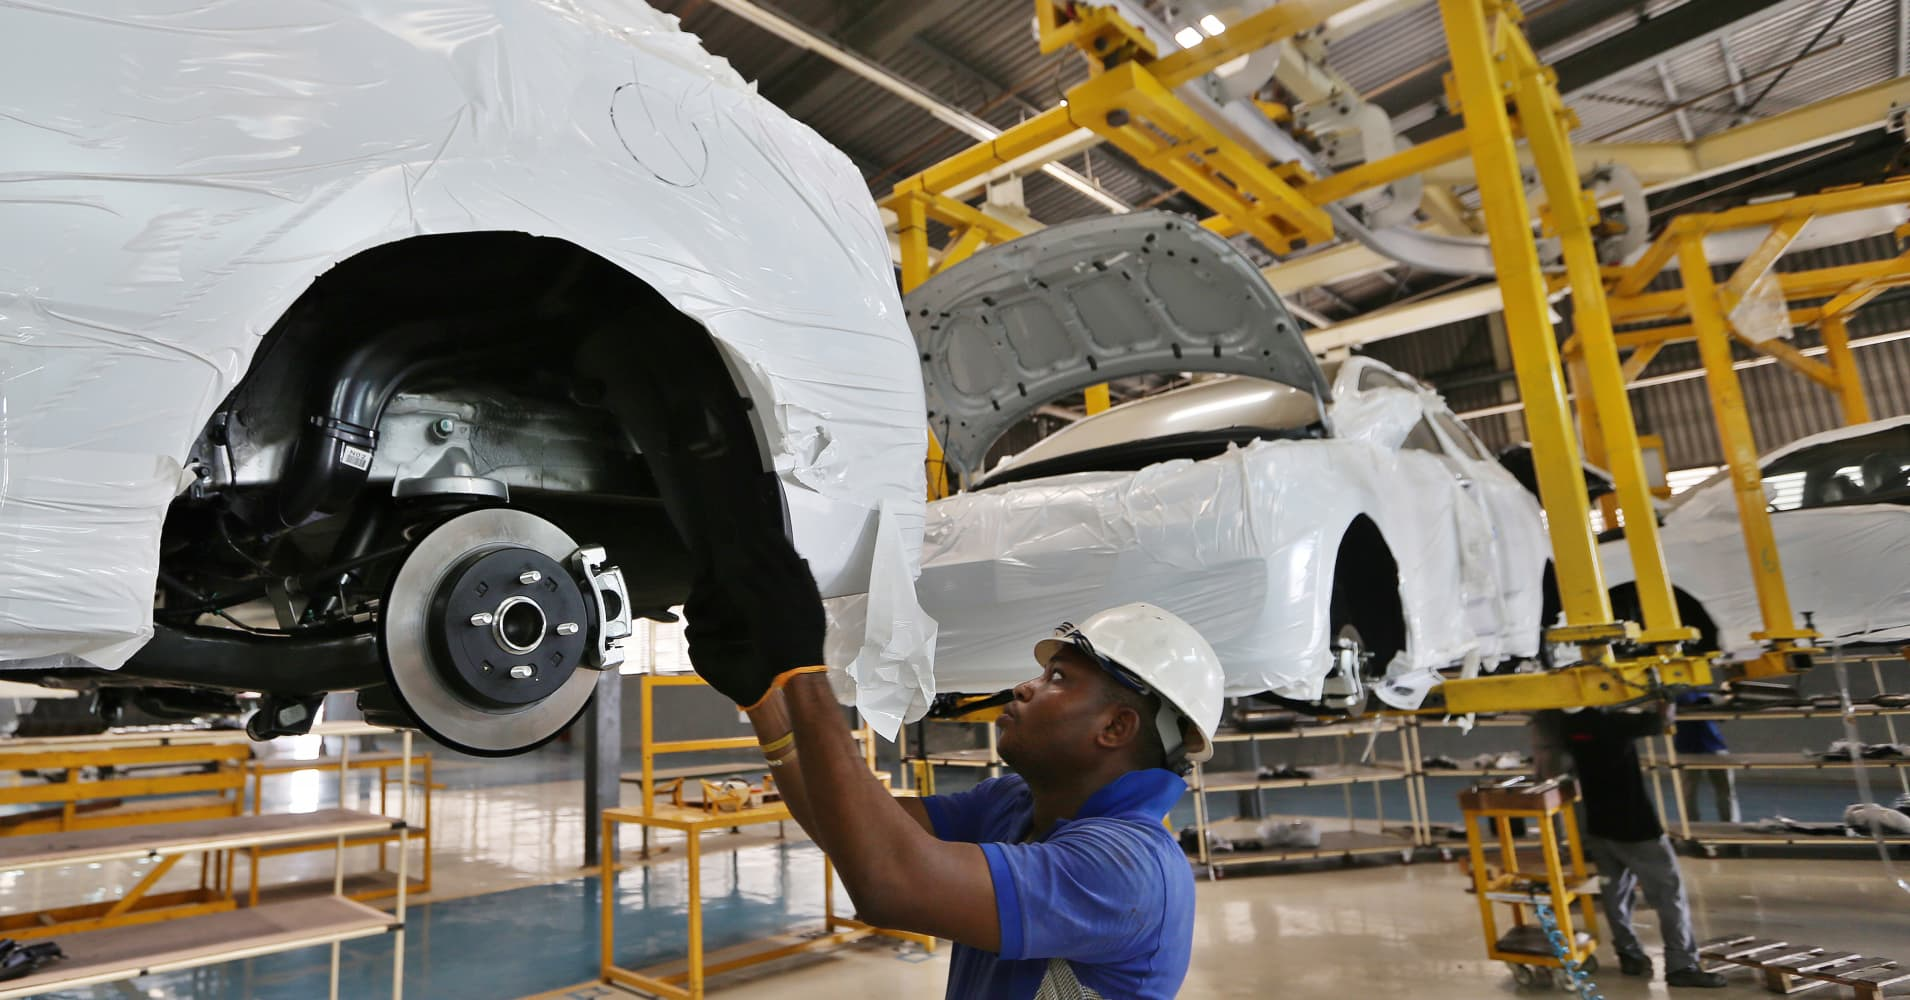 A worker fits parts to the underside of a raised Hyundai Motor Co. Accent automobile on a production line at Stallion Group vehicle assembly plant in Lagos, Nigeria, on February 17, 2016.